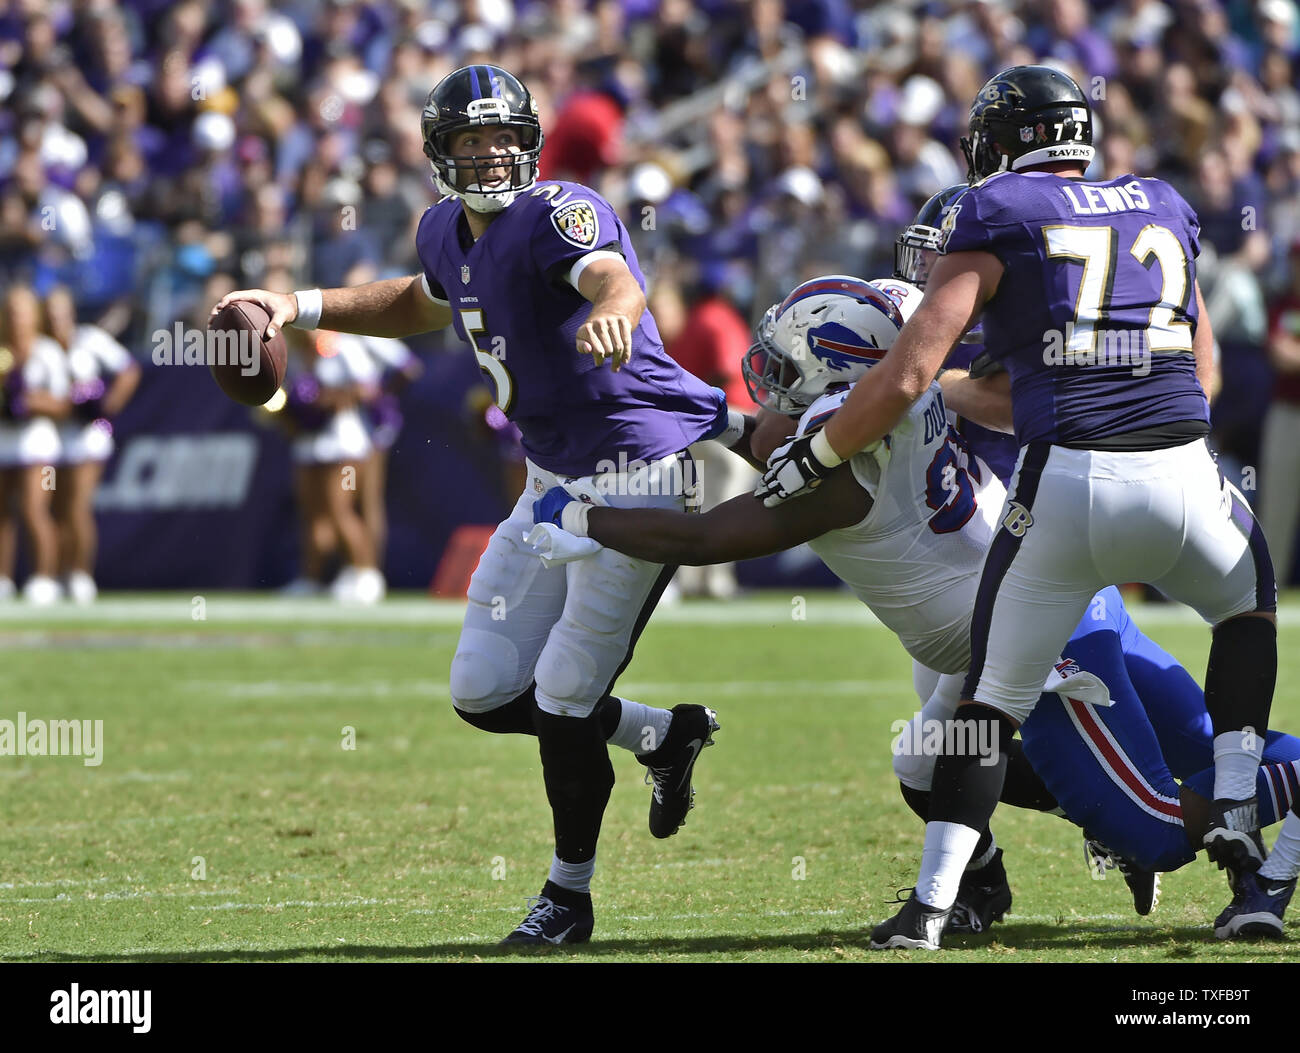 Baltimore Ravens Quarterback Joe Flacco 5 Is Tackled For A Loss By Buffalo Bills Defensive Tackle Leger Douzable 91 During The Second Half Of An Nfl Football Game At M T Bank Stadium